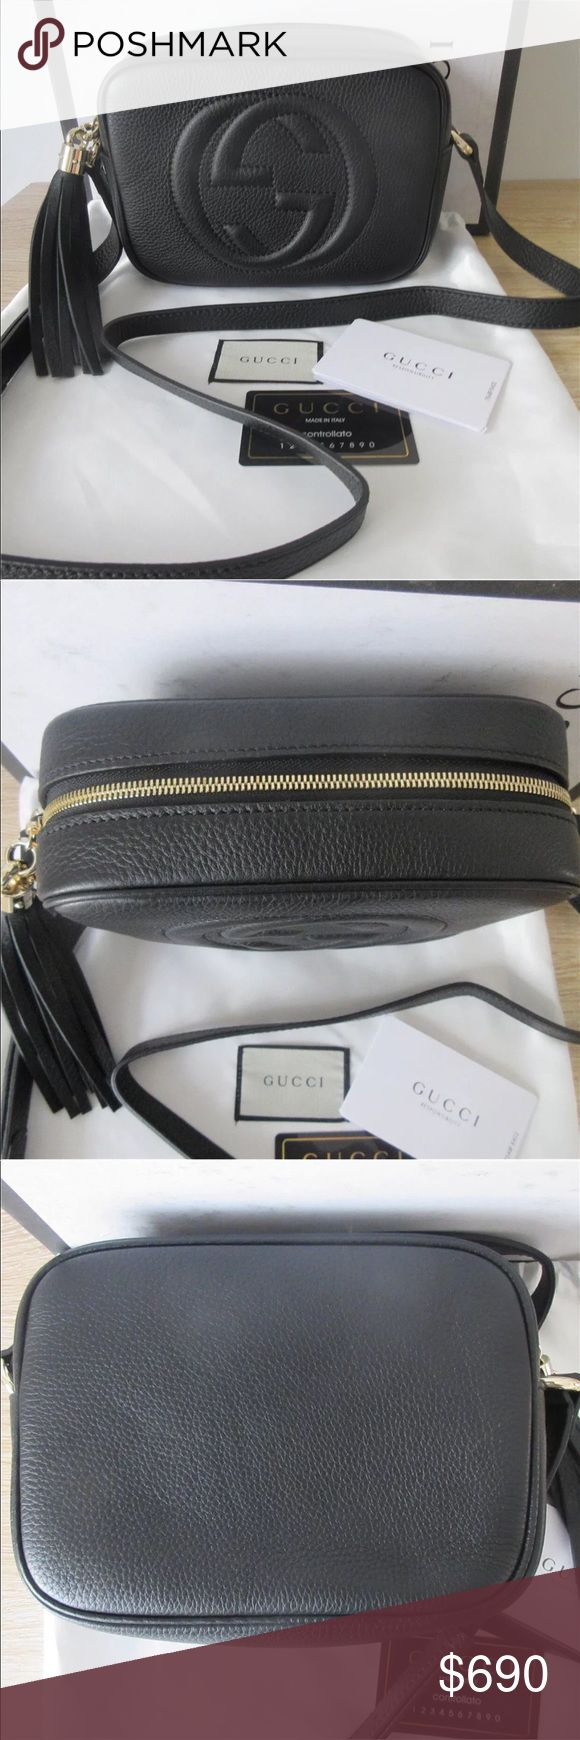 Black Gucci Soho Disco Crossbody Bag 100% Authentic ♦️ We are a very negotiable service ♦️ We provide overnight shipping and express shipping ♦️ Our transactions are made through third party applications ♦️ If you are interested in buying this product please contact us via 646-431-6521 ♦️ Gucci Bags Crossbody Bags